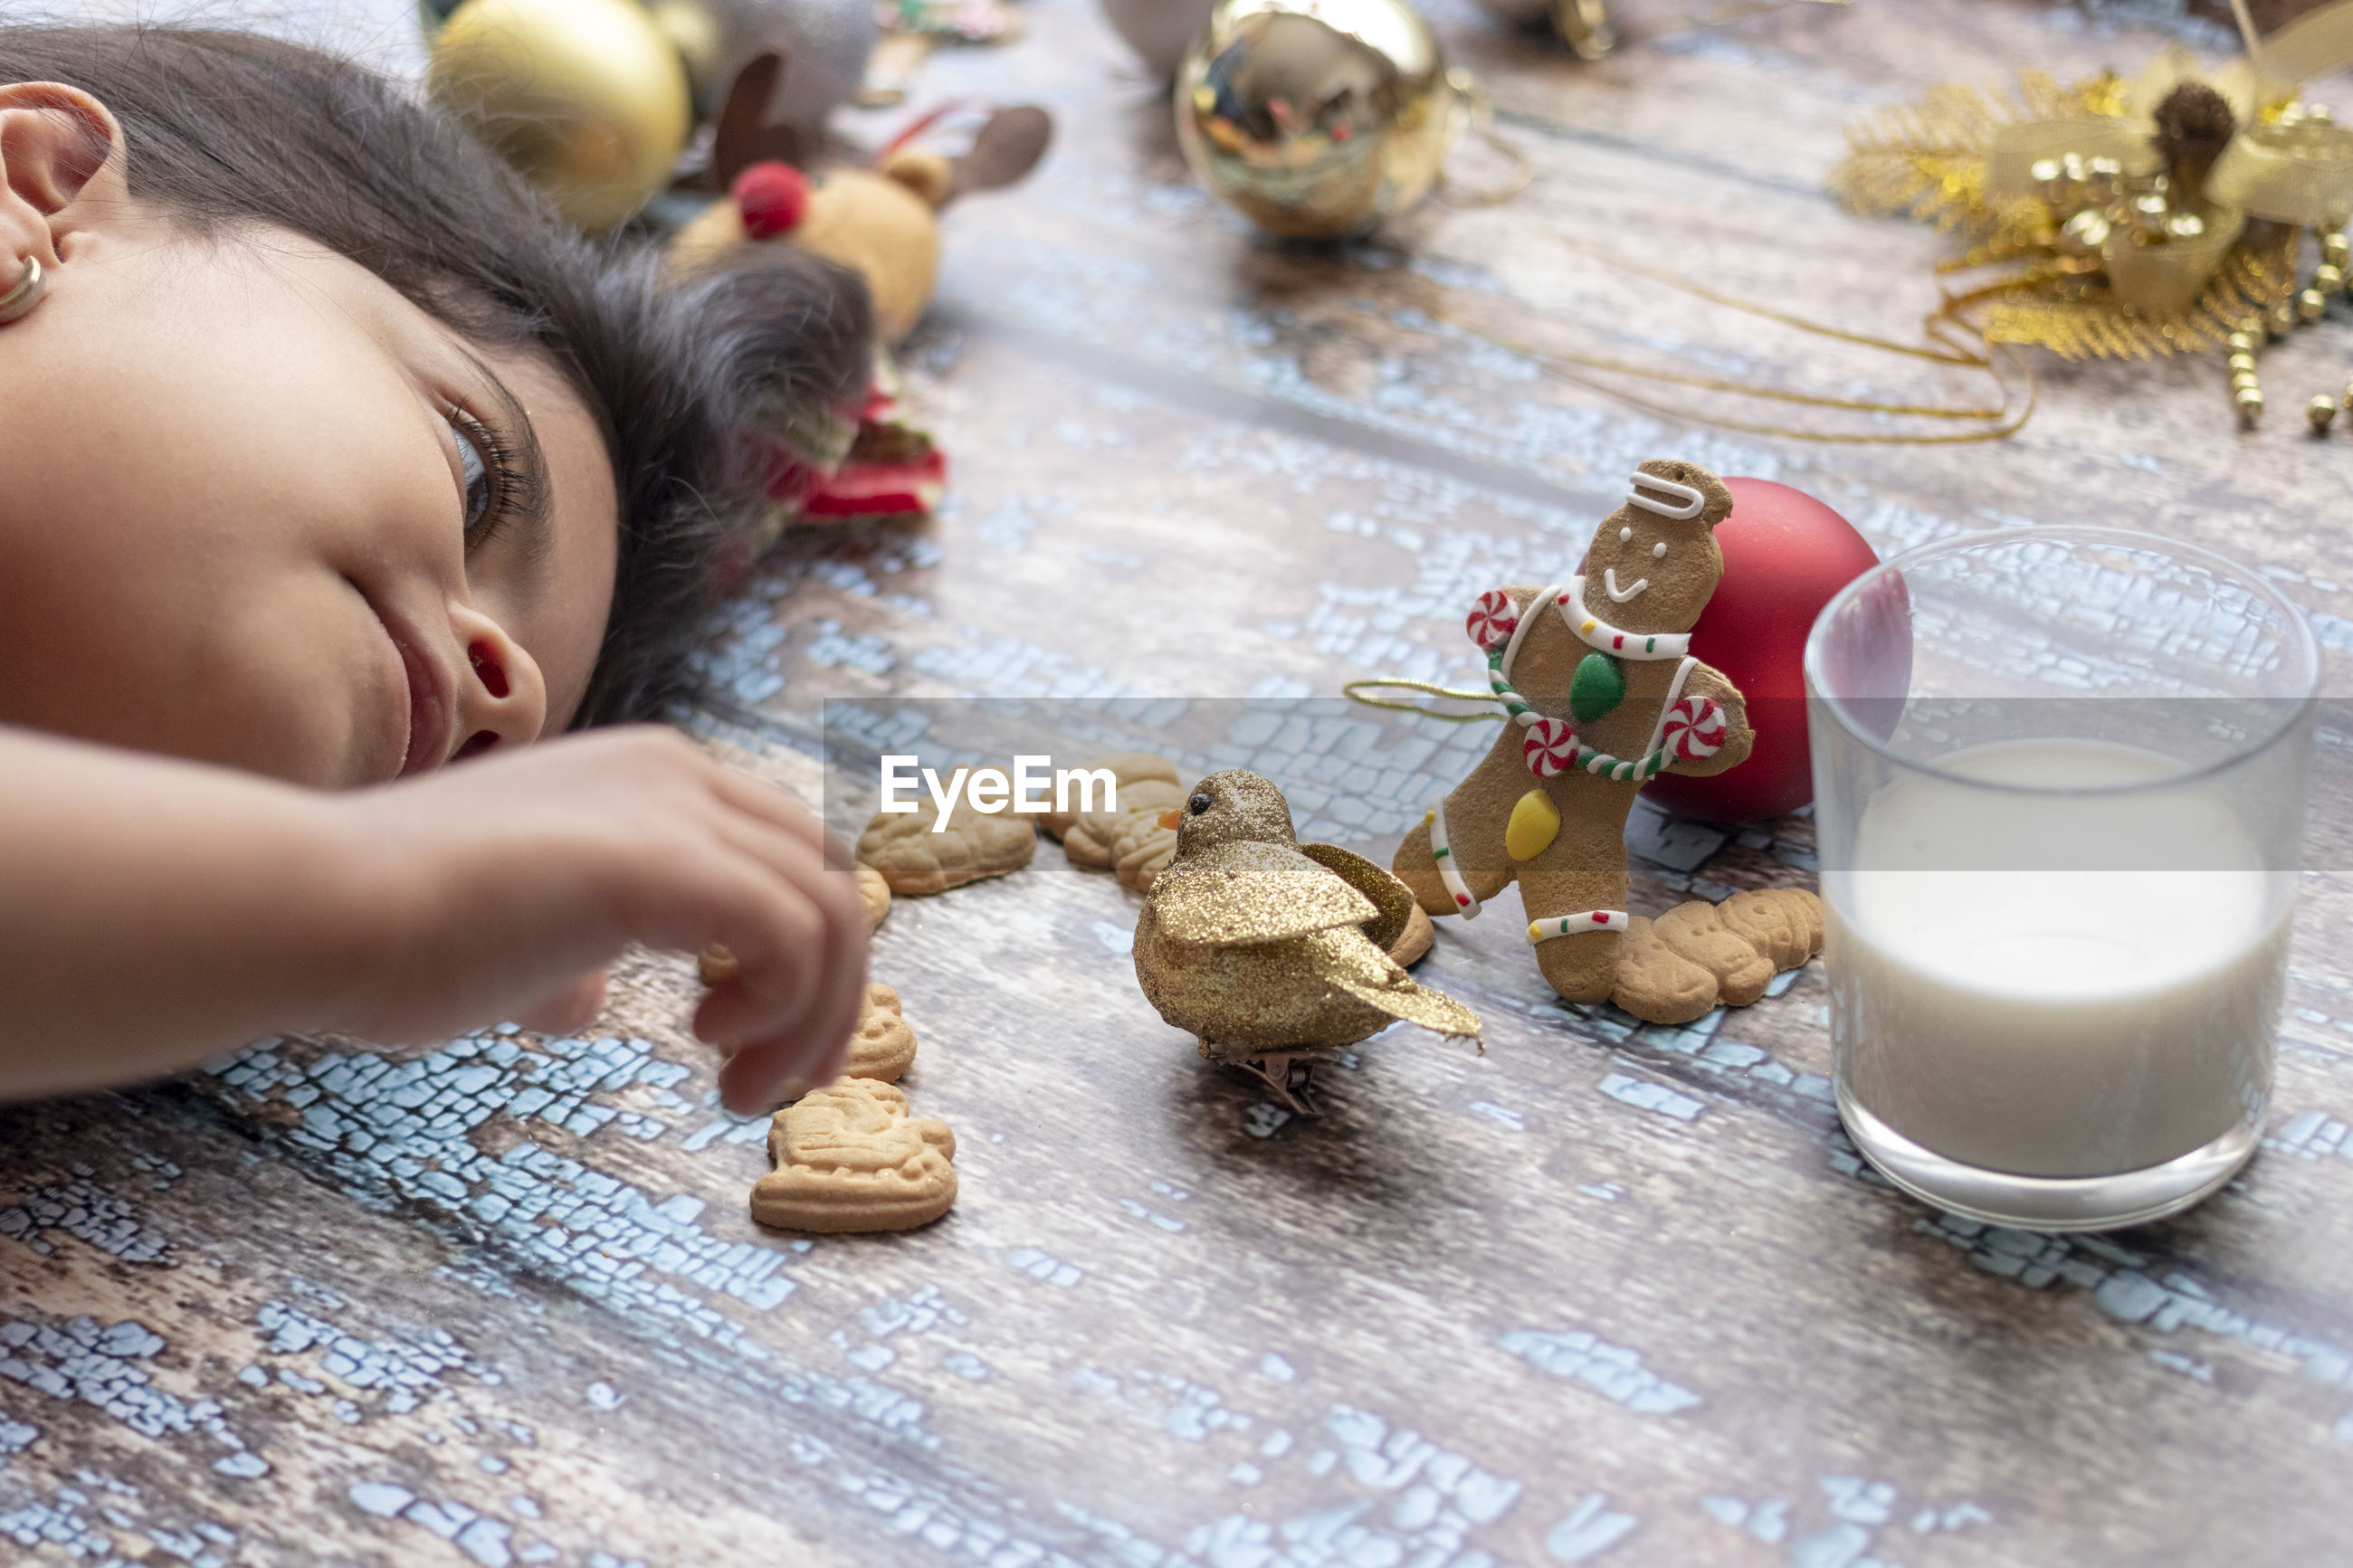 Close-up of girl lying down by baked cookies on wooden flooring